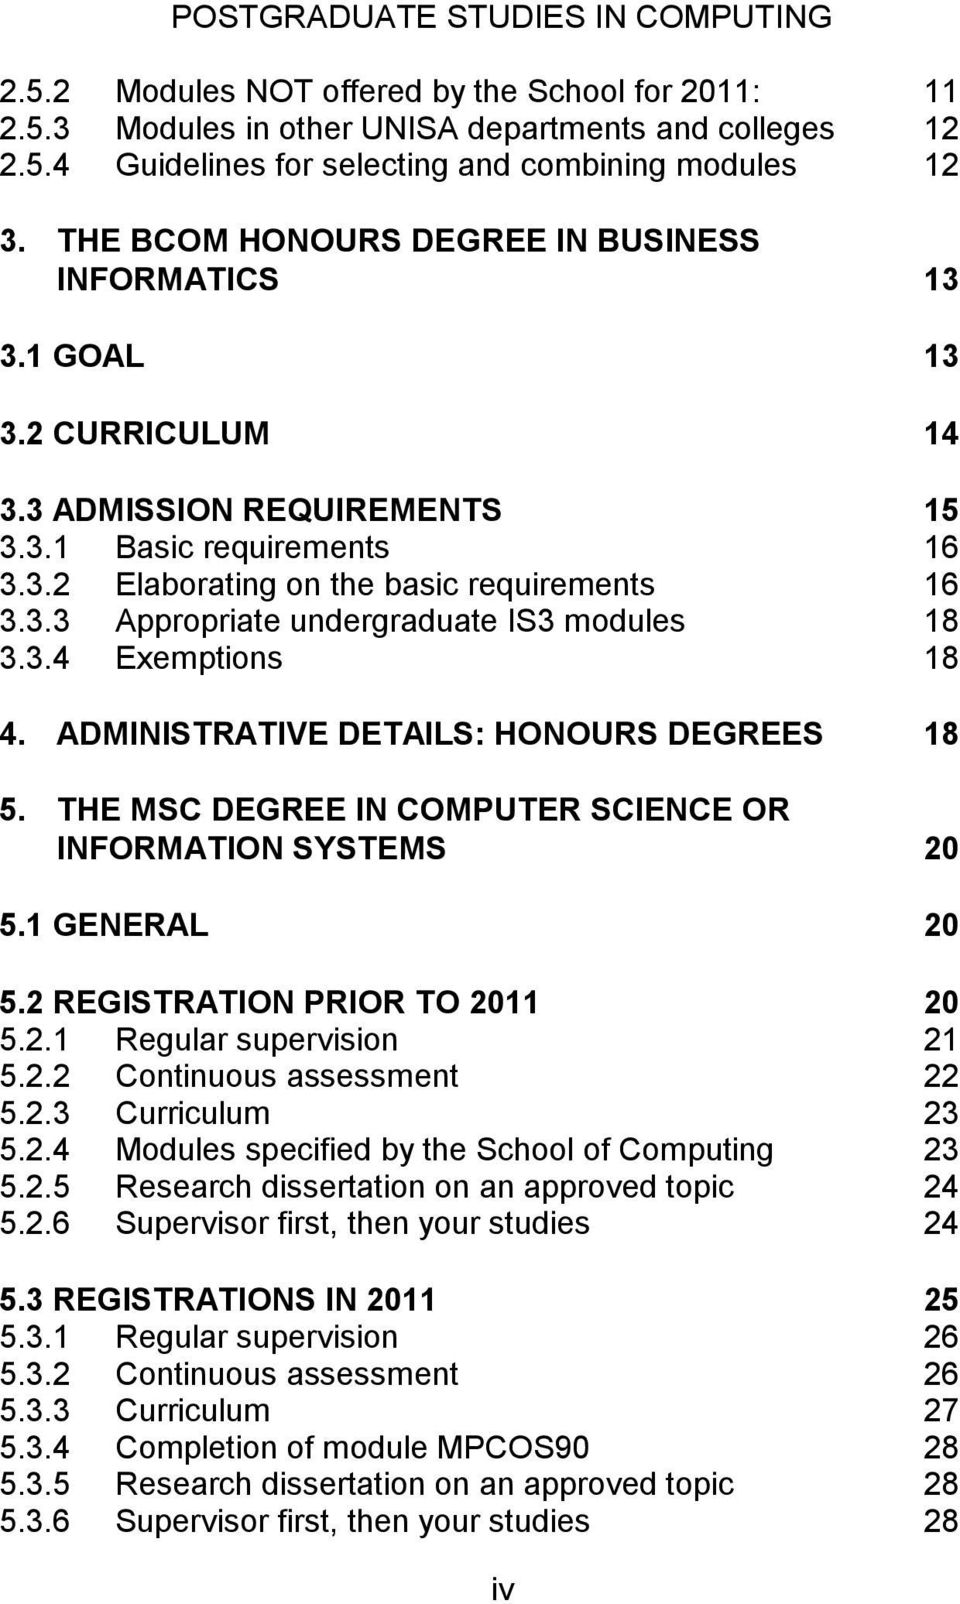 3.4 Exemptions 18 4. ADMINISTRATIVE DETAILS: HONOURS DEGREES 18 5. THE MSC DEGREE IN COMPUTER SCIENCE OR INFORMATION SYSTEMS 20 5.1 GENERAL 20 5.2 REGISTRATION PRIOR TO 2011 20 5.2.1 Regular supervision 21 5.